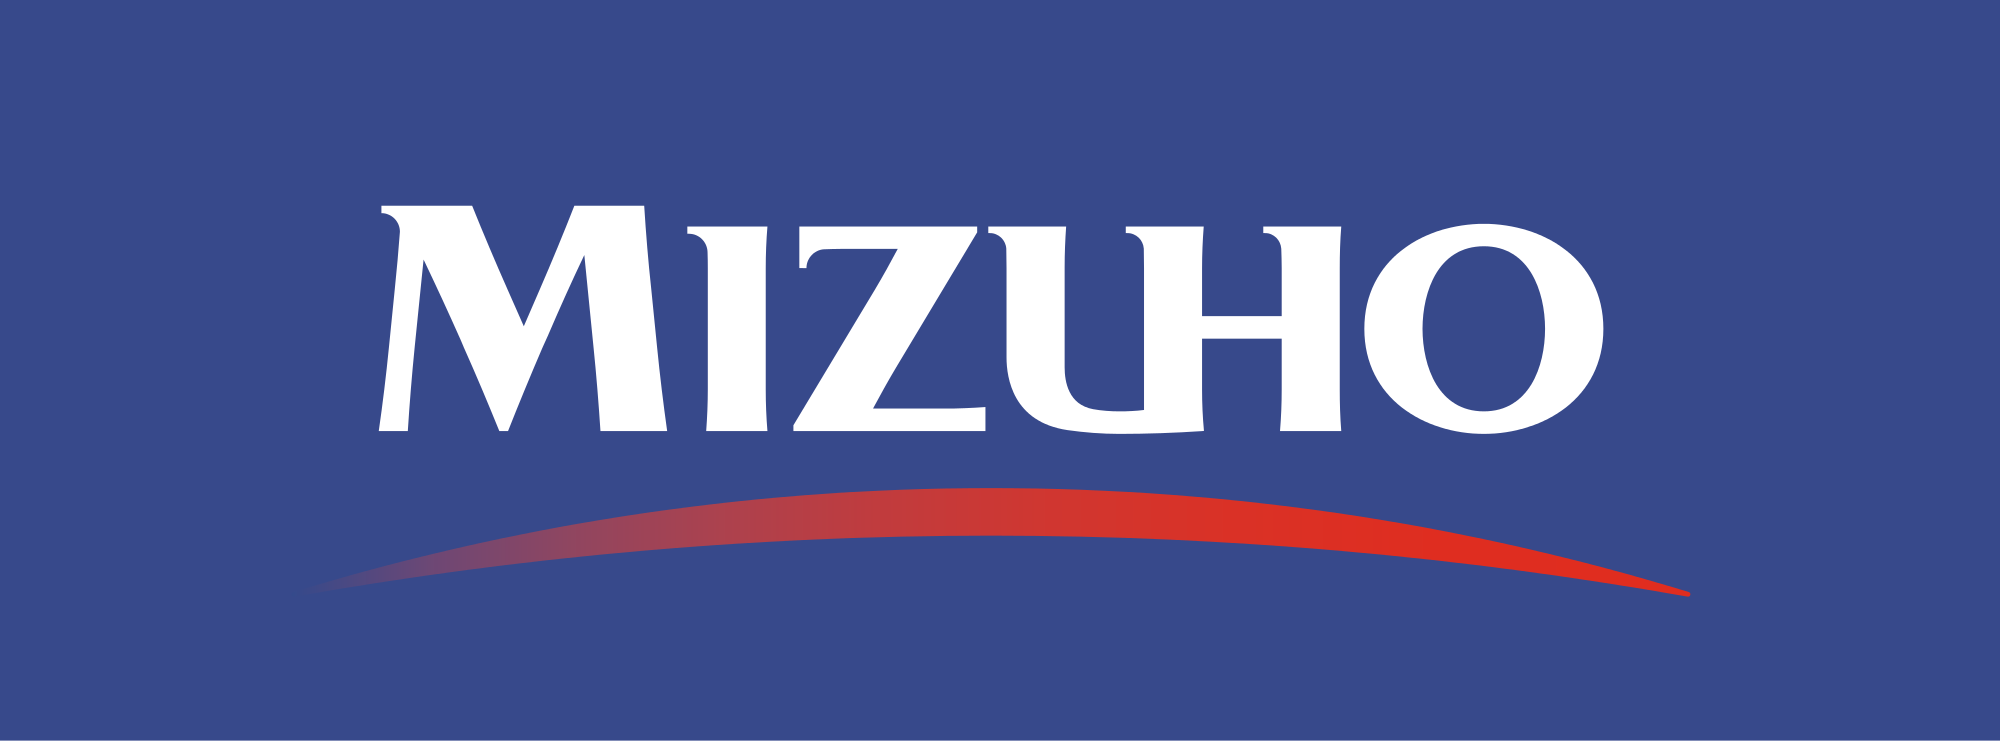 Mizuho Financial Group Inc. (ADR) (NYSE:MFG) Appoints Two New Directors After Profits Decline